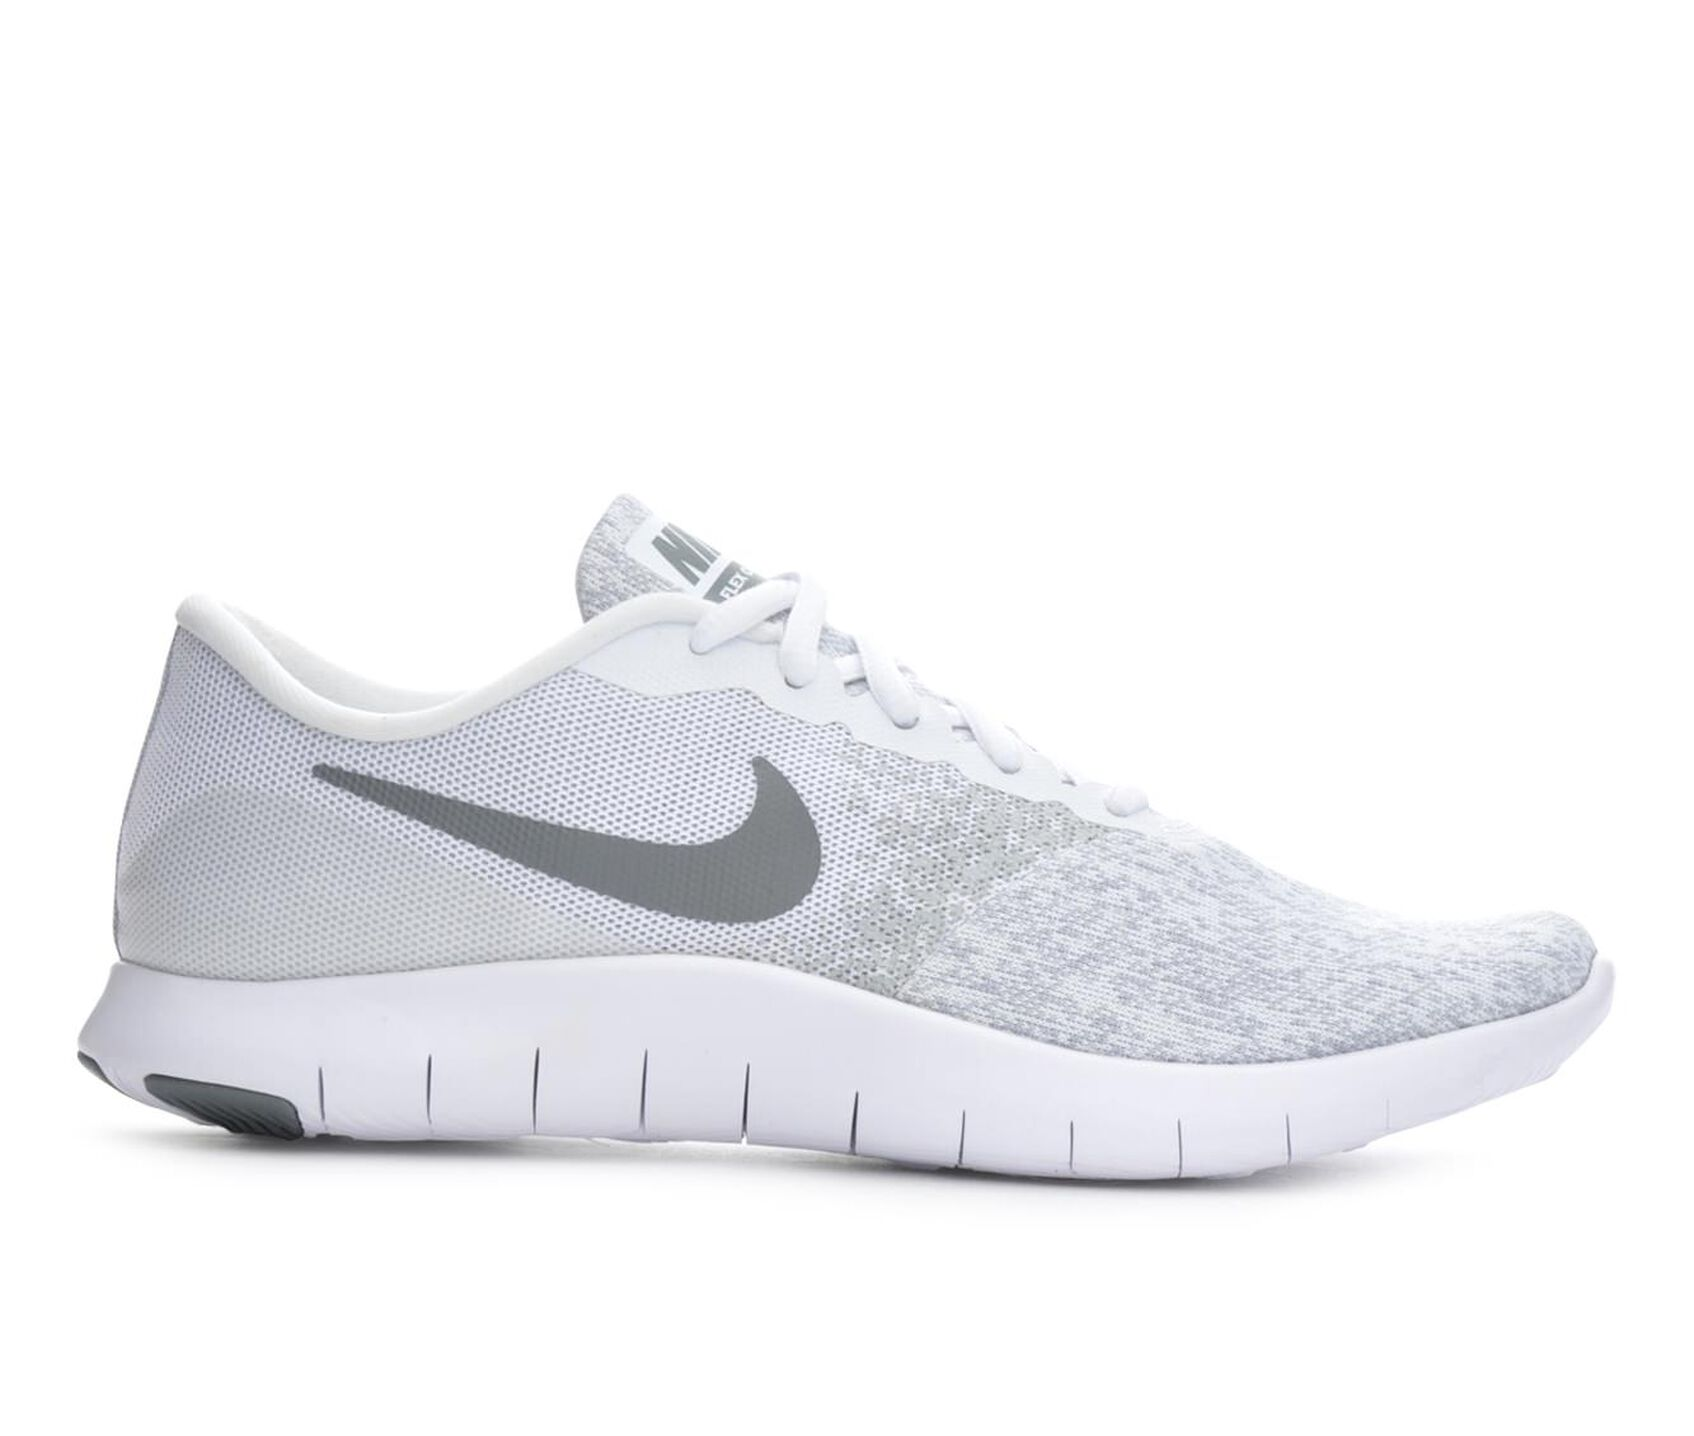 quality design b68a5 c77c6 ... Nike Flex Contact Running Shoes. Previous